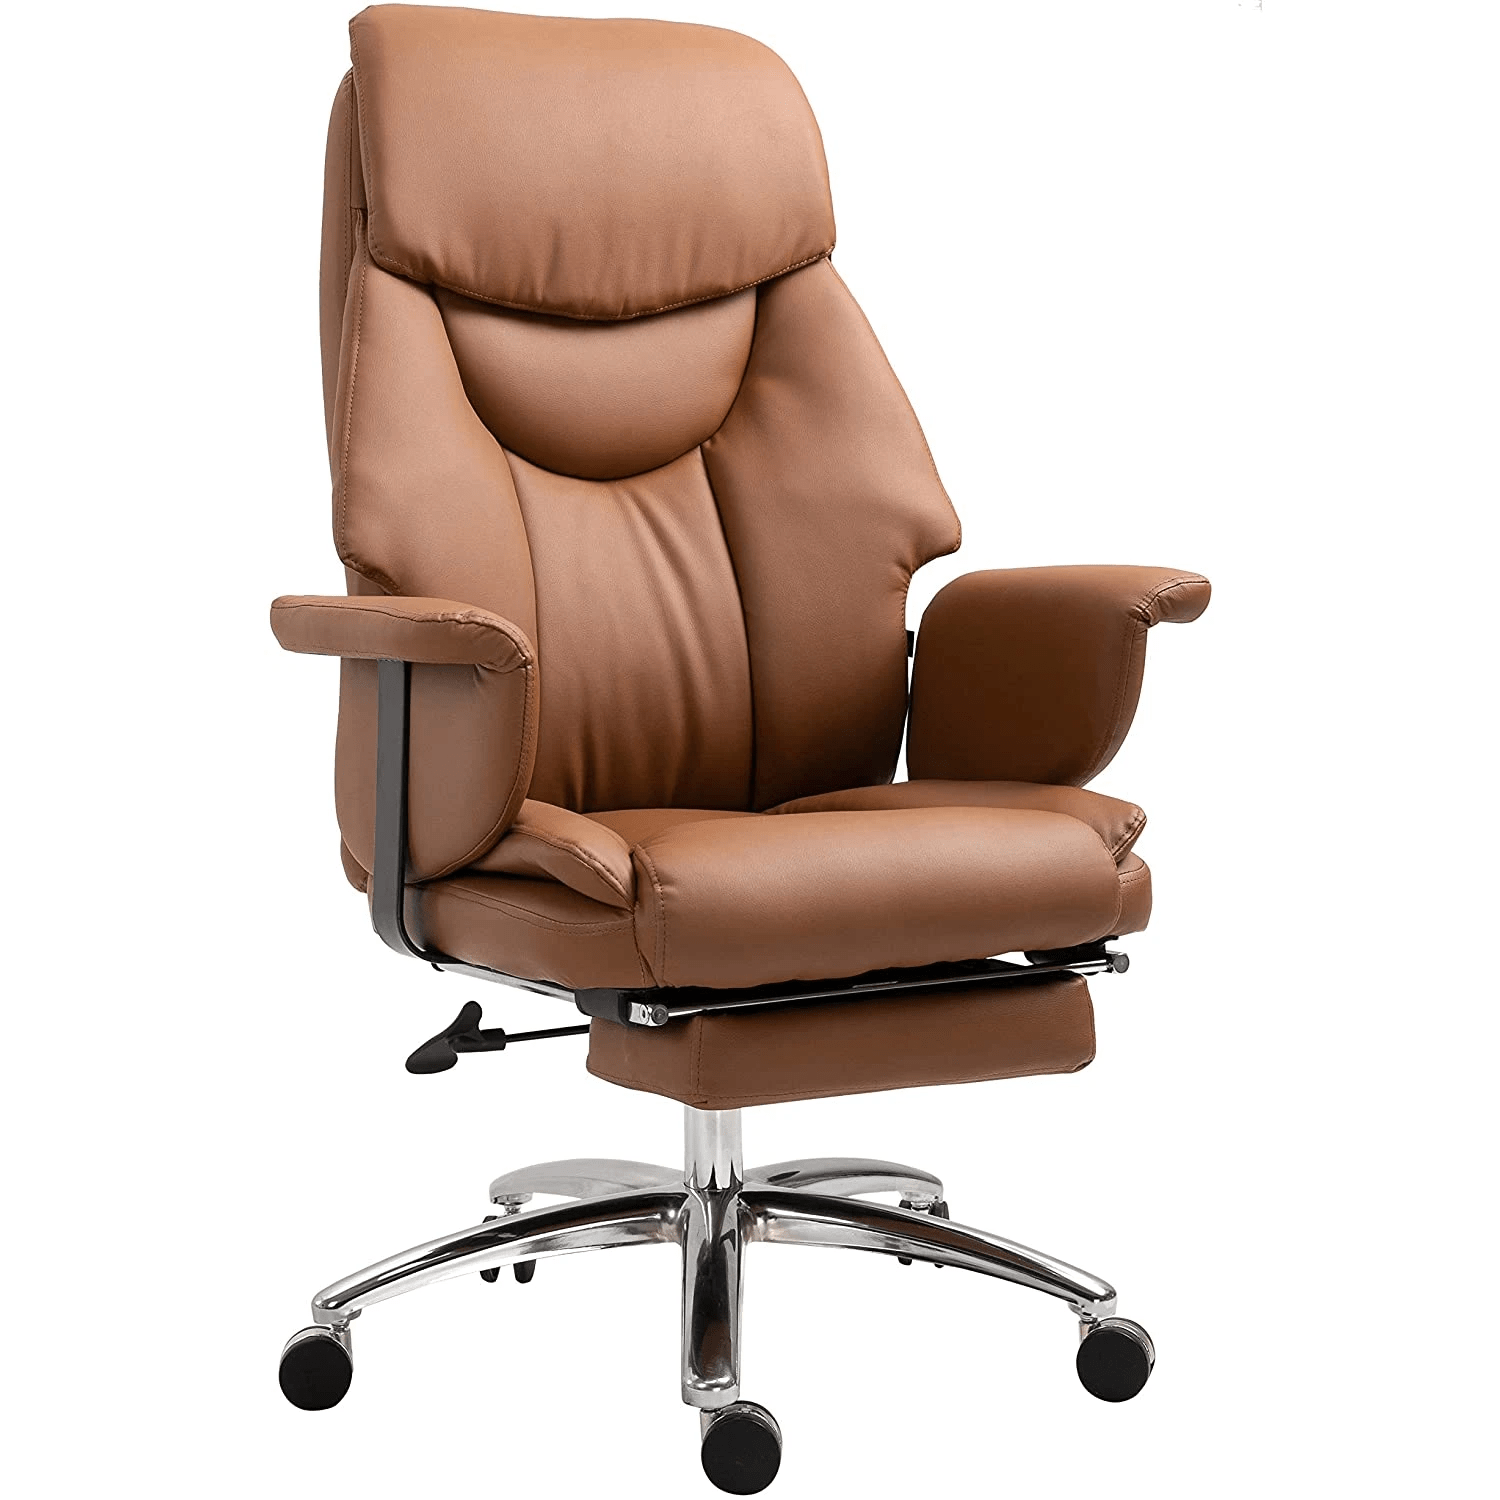 Abraham Wingback Style Office Chair with Footrest in Brown PU Leather - DaAl's